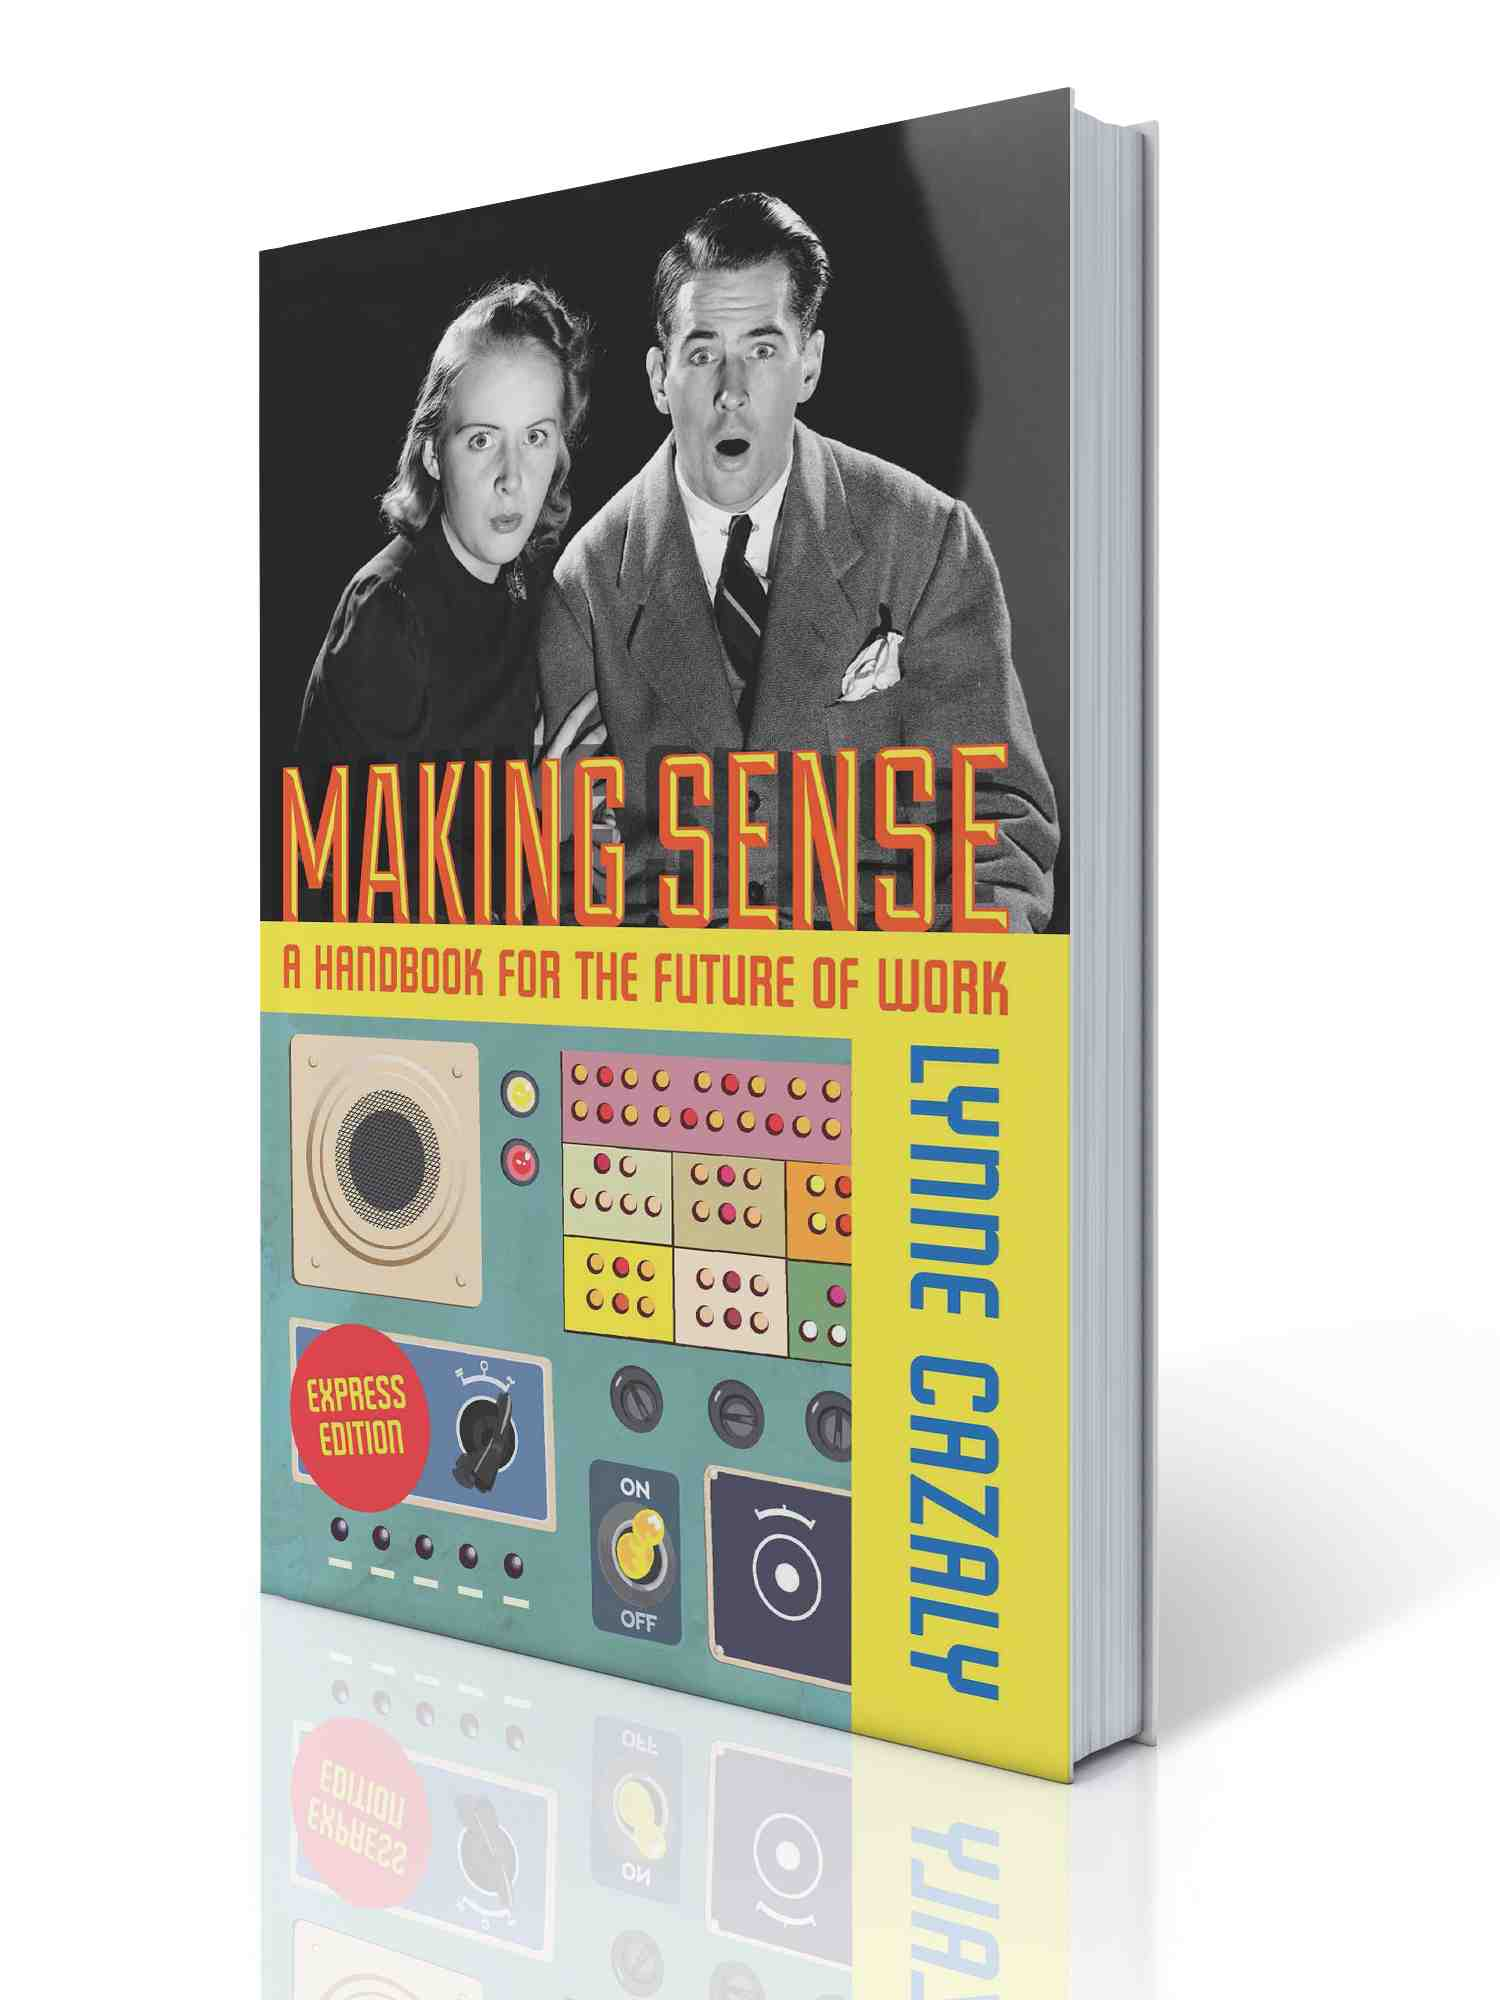 Making Sense: A Handbook for the Future of Work